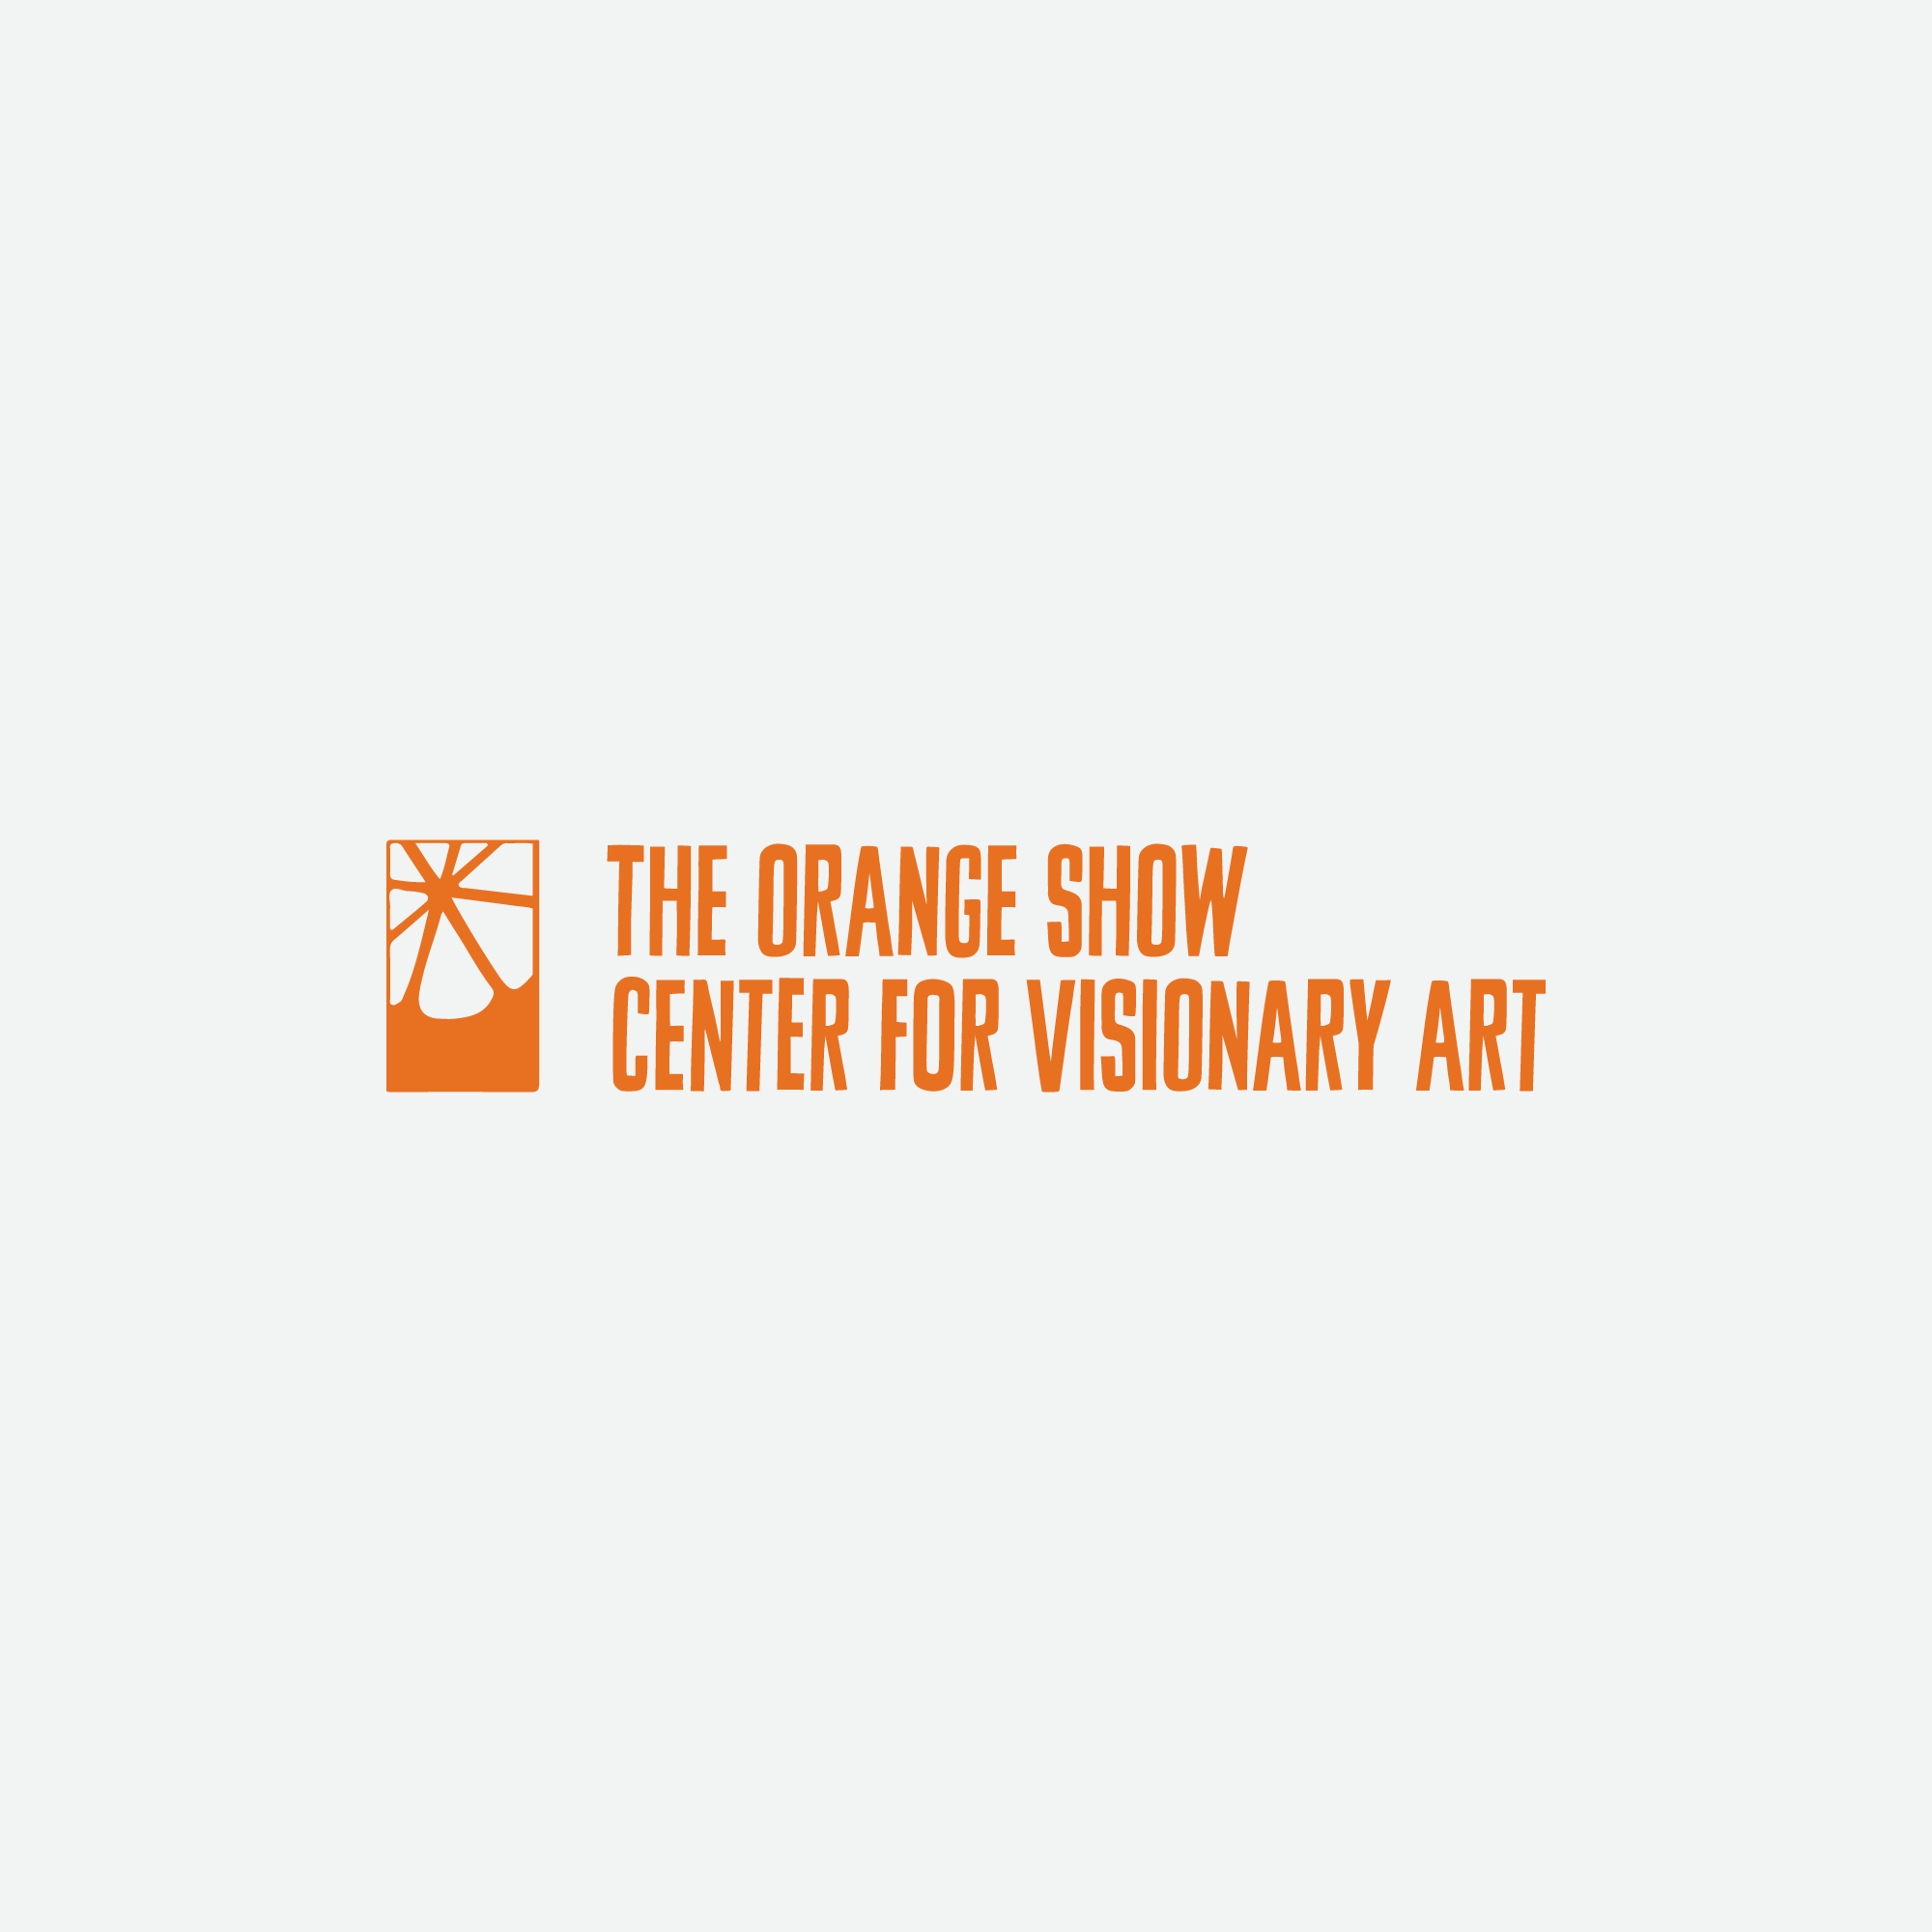 Orange Show Center for Visionary Art